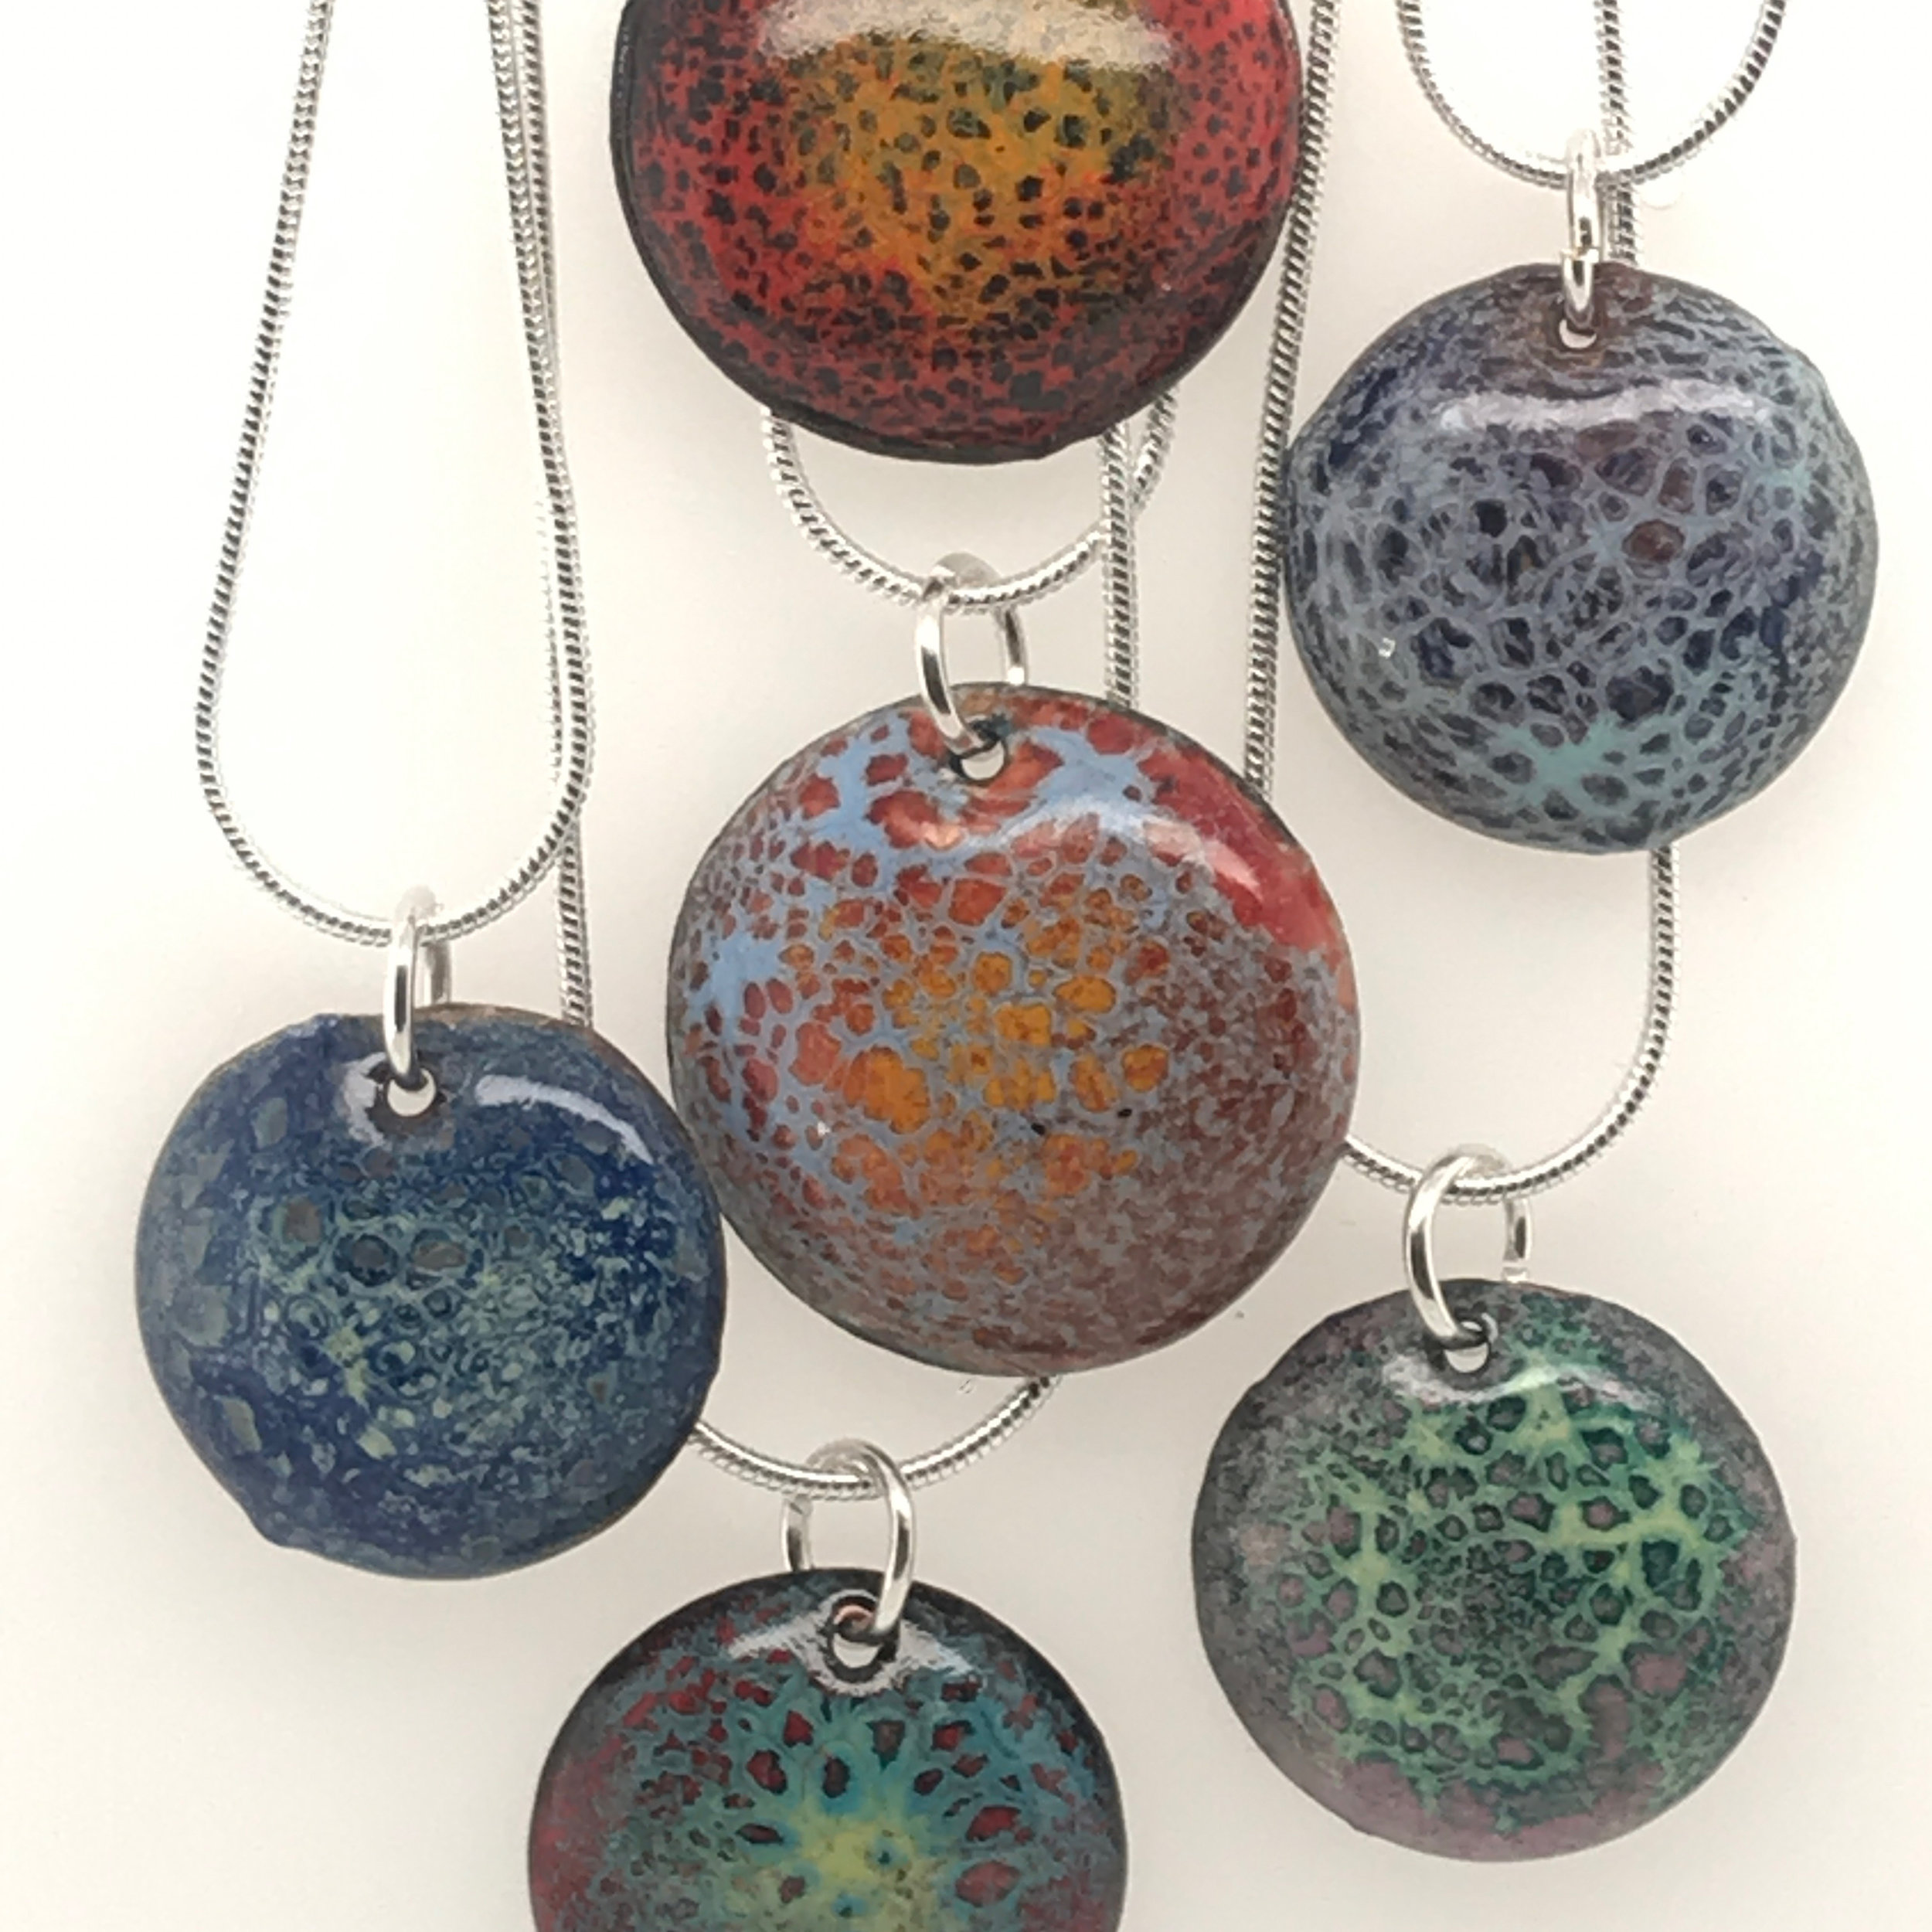 dwell local studio ~~ classes   Pre-registration is required, please call (507)202-3815   It's a Charming Thing, Movement and Glass — with Amy Johnson    Wednesday, June 19th @ 6pm-9pm   Lets Experiment!!! Do you want to see glass move? Crackle? Divide? In this class you will play with enamel which is powdered glass and experiment with reactions. You will learn that each enamel colorant has a different expansion rate. You will then learn through your experiments how combining a low expansion rate enamel called crackle with different colors and temperatures can make glass move differently. Come and play with movement and glass! Learn the art of enameling, the process of binding powdered glass to a metal surface. In this class, you will learn basic enameling skills. You will learn how to sift powdered glass onto copper. You will then heat and melt the powdered glass by the use of a Mapp gas torch. At the end of this class you will have acquired various charms that you have made through your experiments. You will attach jump rings to your charms and I will provide a 18 inch chain so you can alternate and wear your charm pendants. Students should wear closed toe shoes, natural fiber clothing and have their hair tied back. $50 class fee includes all materials. Pre-registration is required, please call (507)202-3815   Follow us on facebook and instagram for more up to date info…